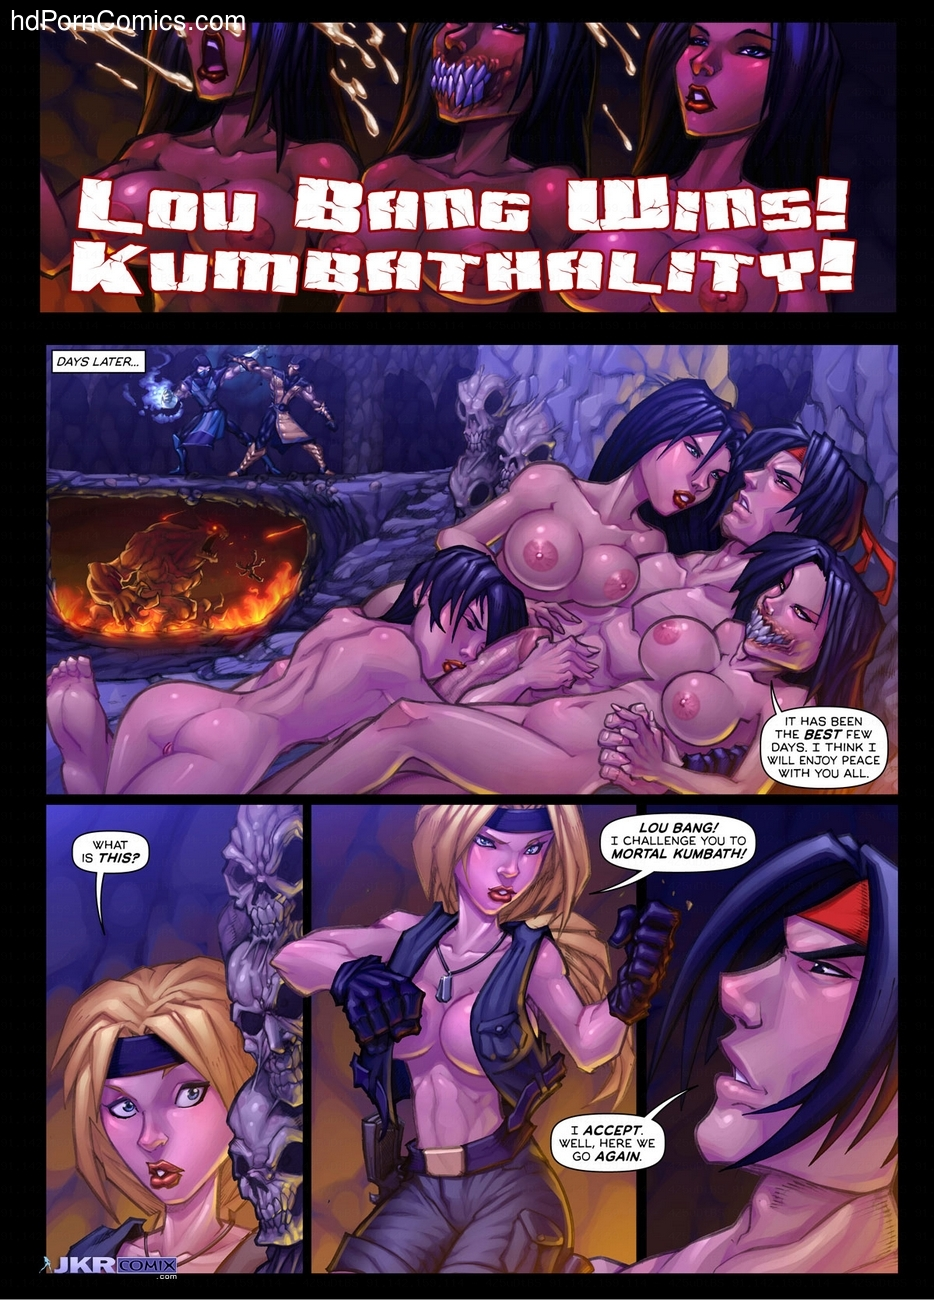 Mortal Kumbath Sex Comic